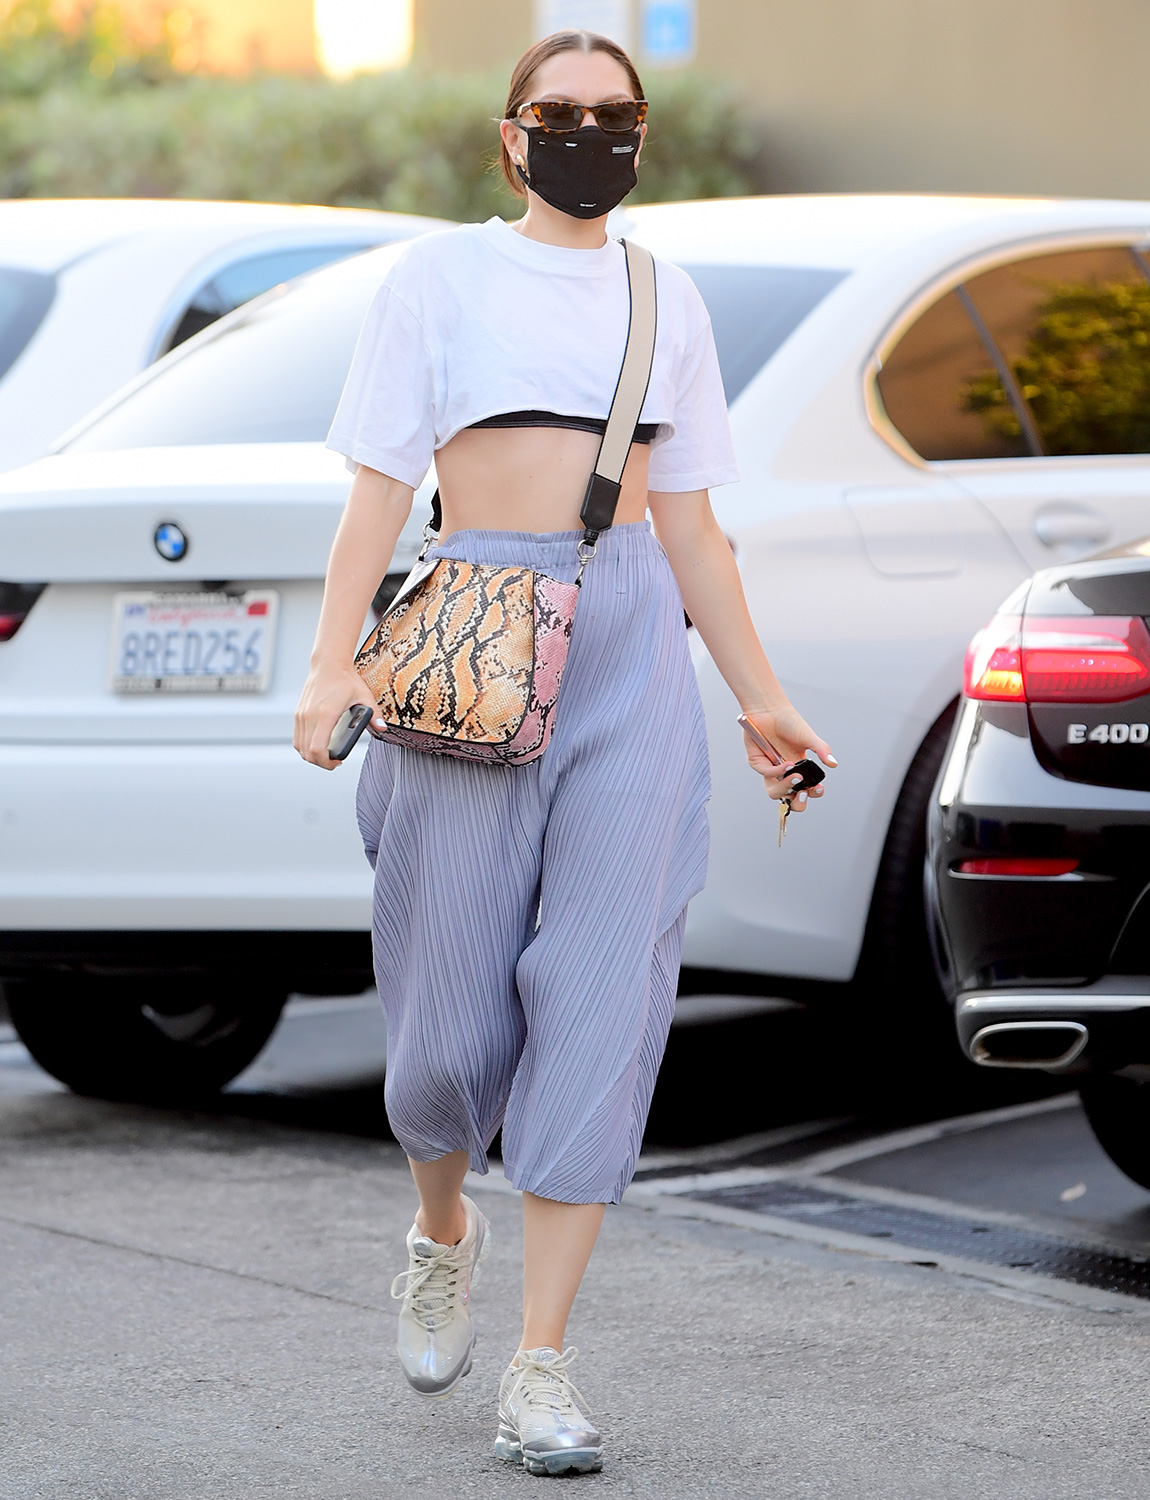 Jessie J Flashes Her Abs In A Crop Top As She Heads To Dinner In Santa Monica